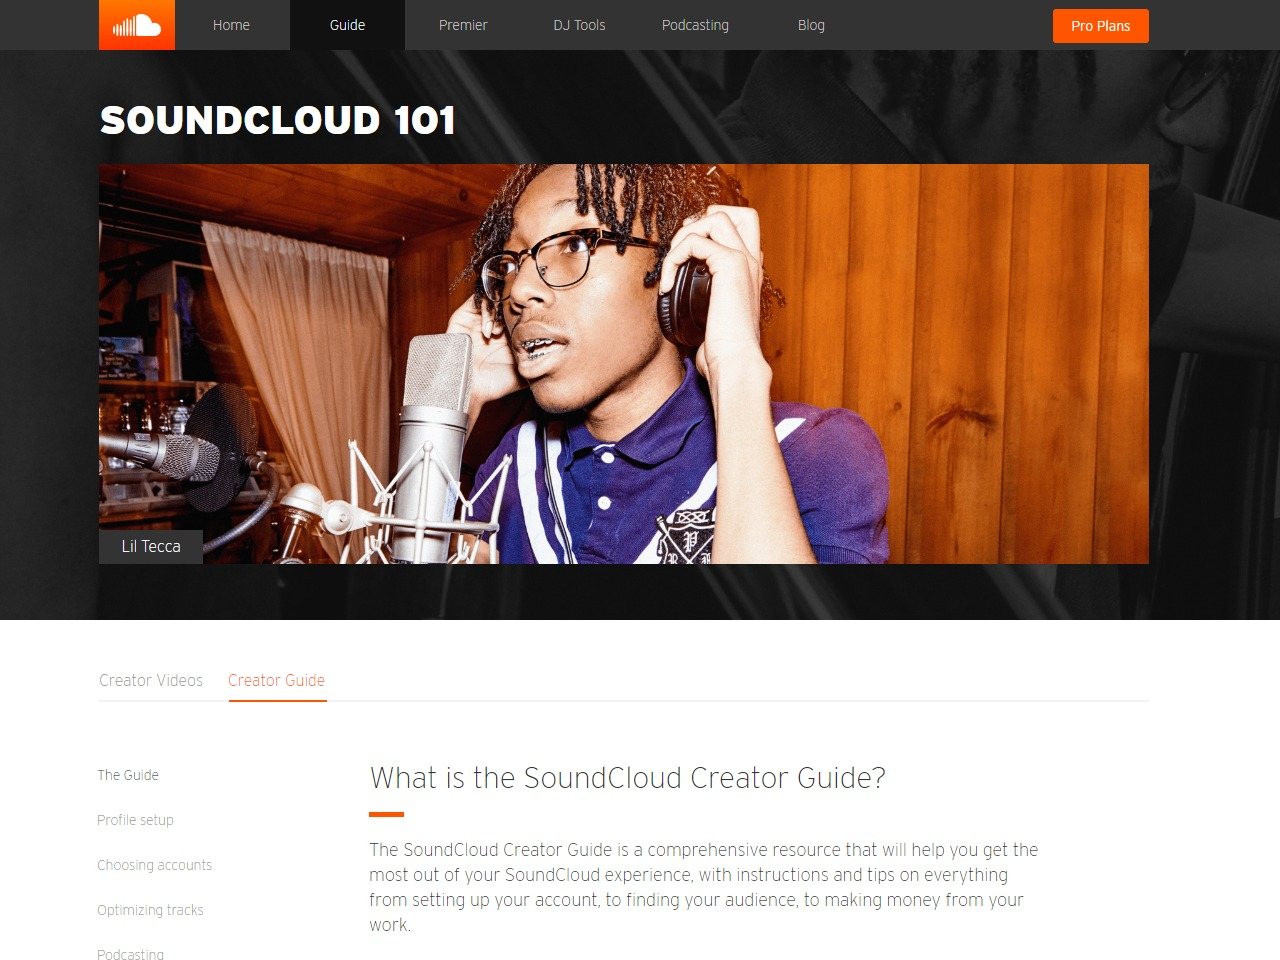 SoundCloud Creator Guide